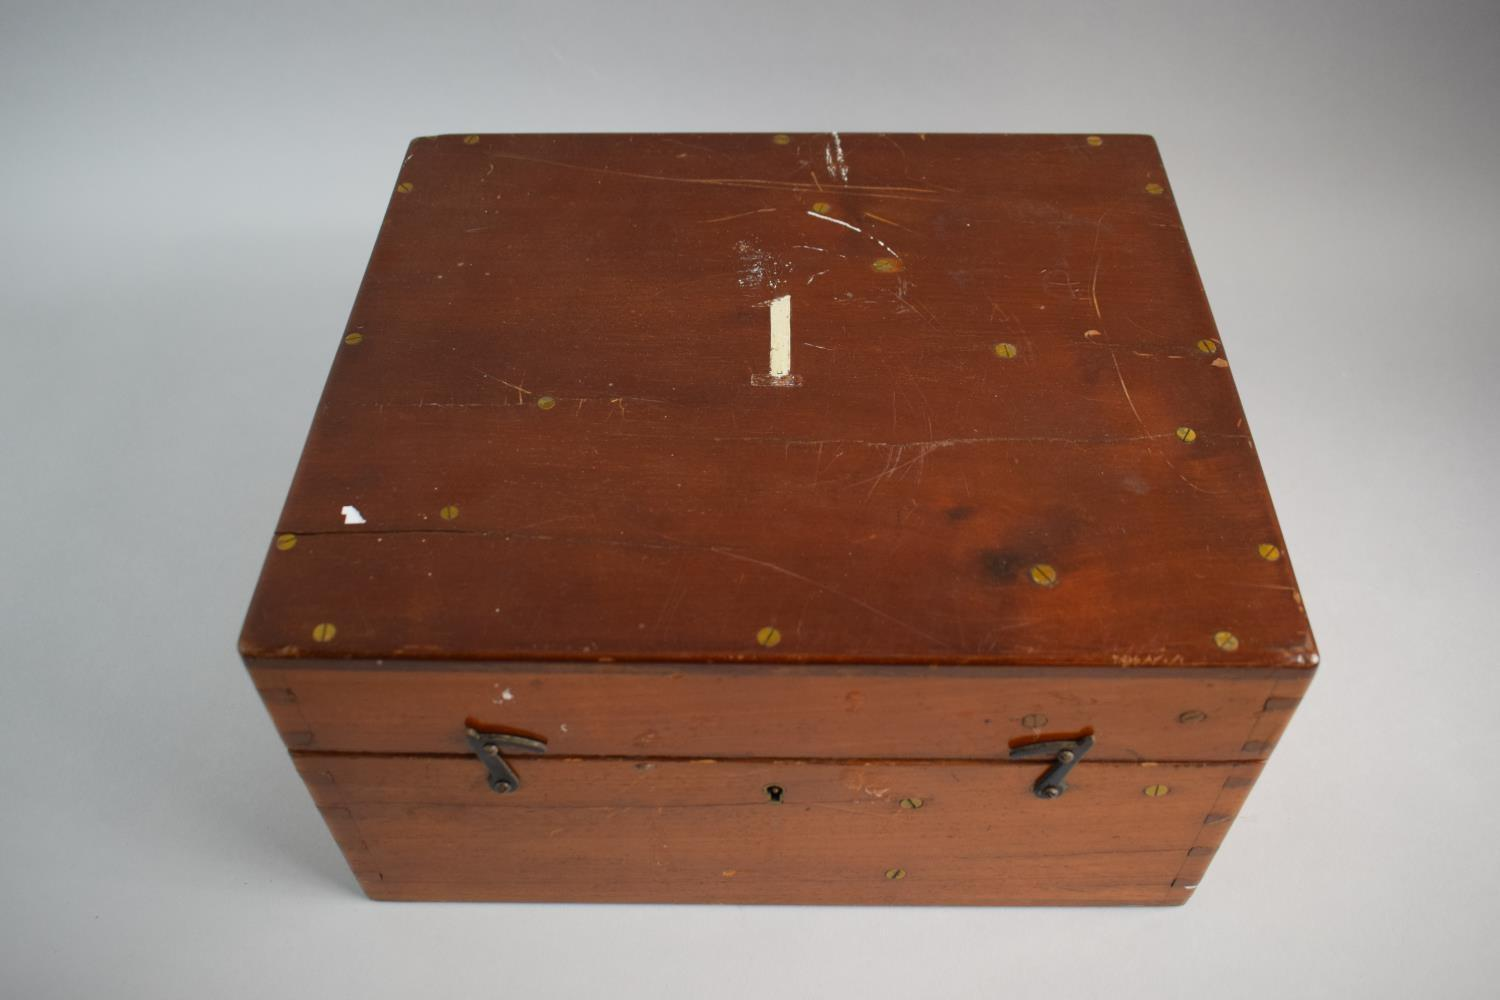 Lot 23 - A Mahogany Cased Brass Theodolite by Troughton & Simms Having Telescope Compass, Magnifiers,